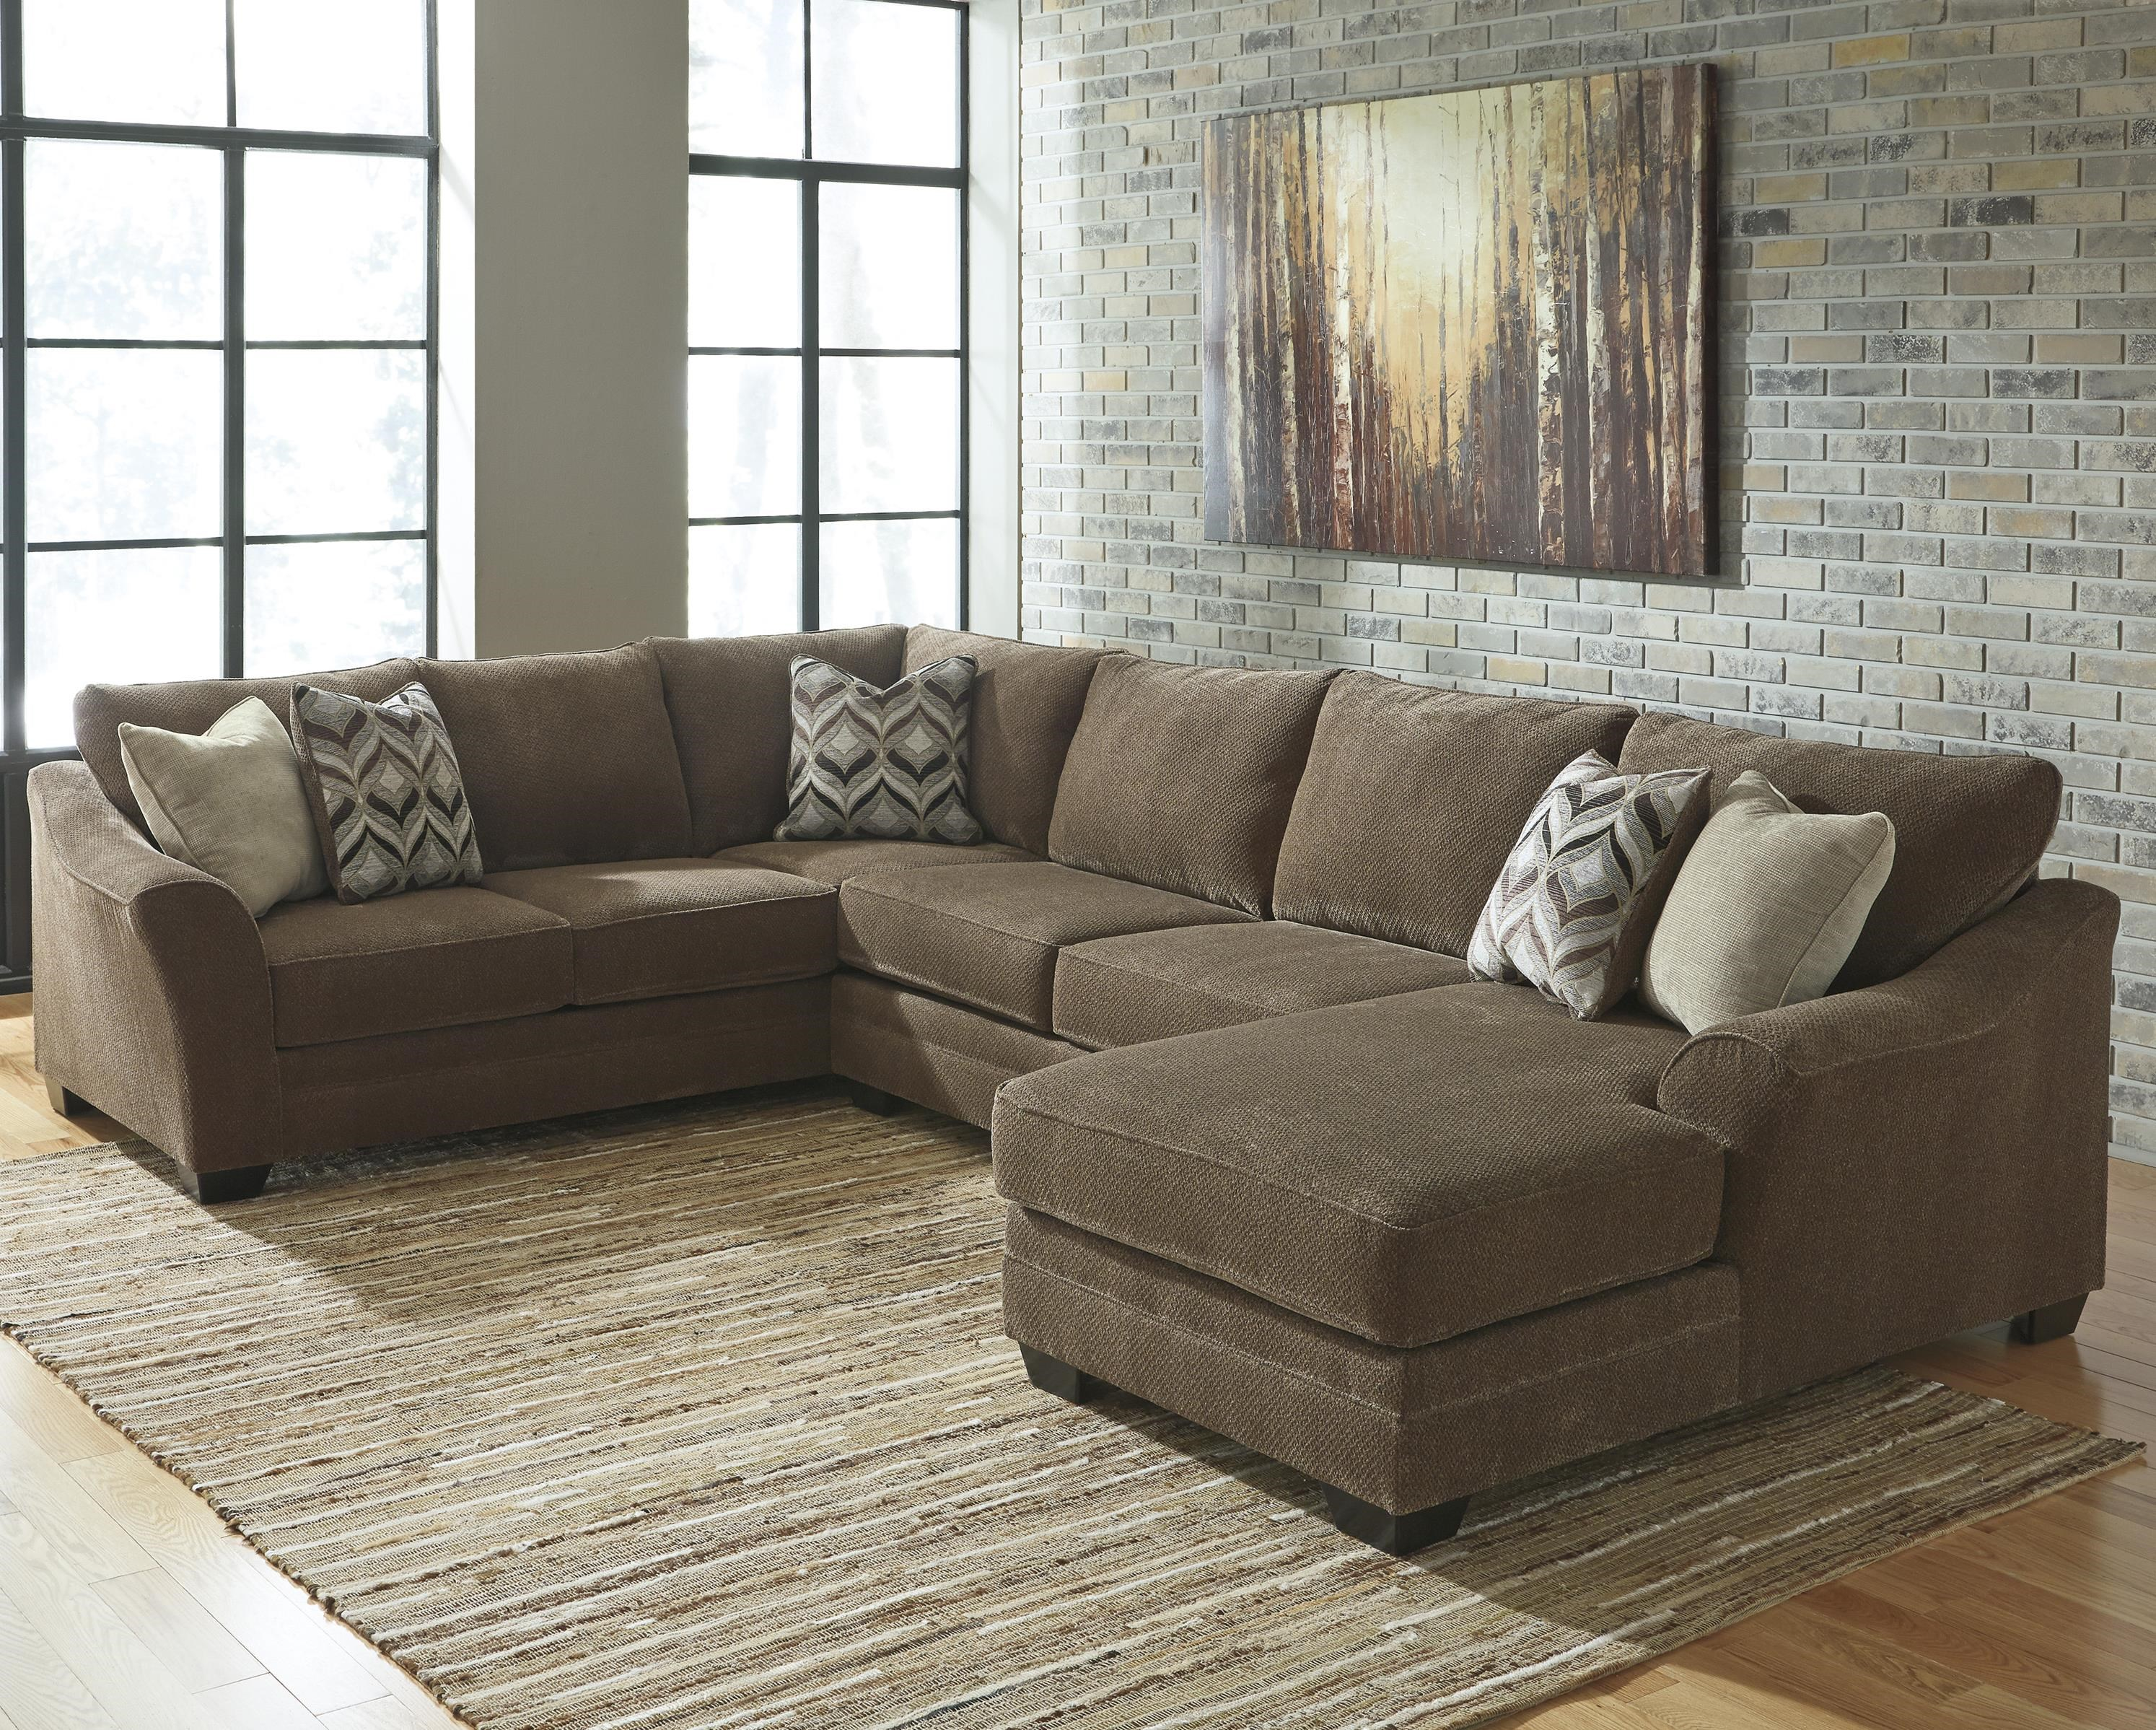 contemporary piece sectional right chaise 3 modern grey microfiber reversible sofa with large ottoman bobkona poundex simplistic collection charcoal